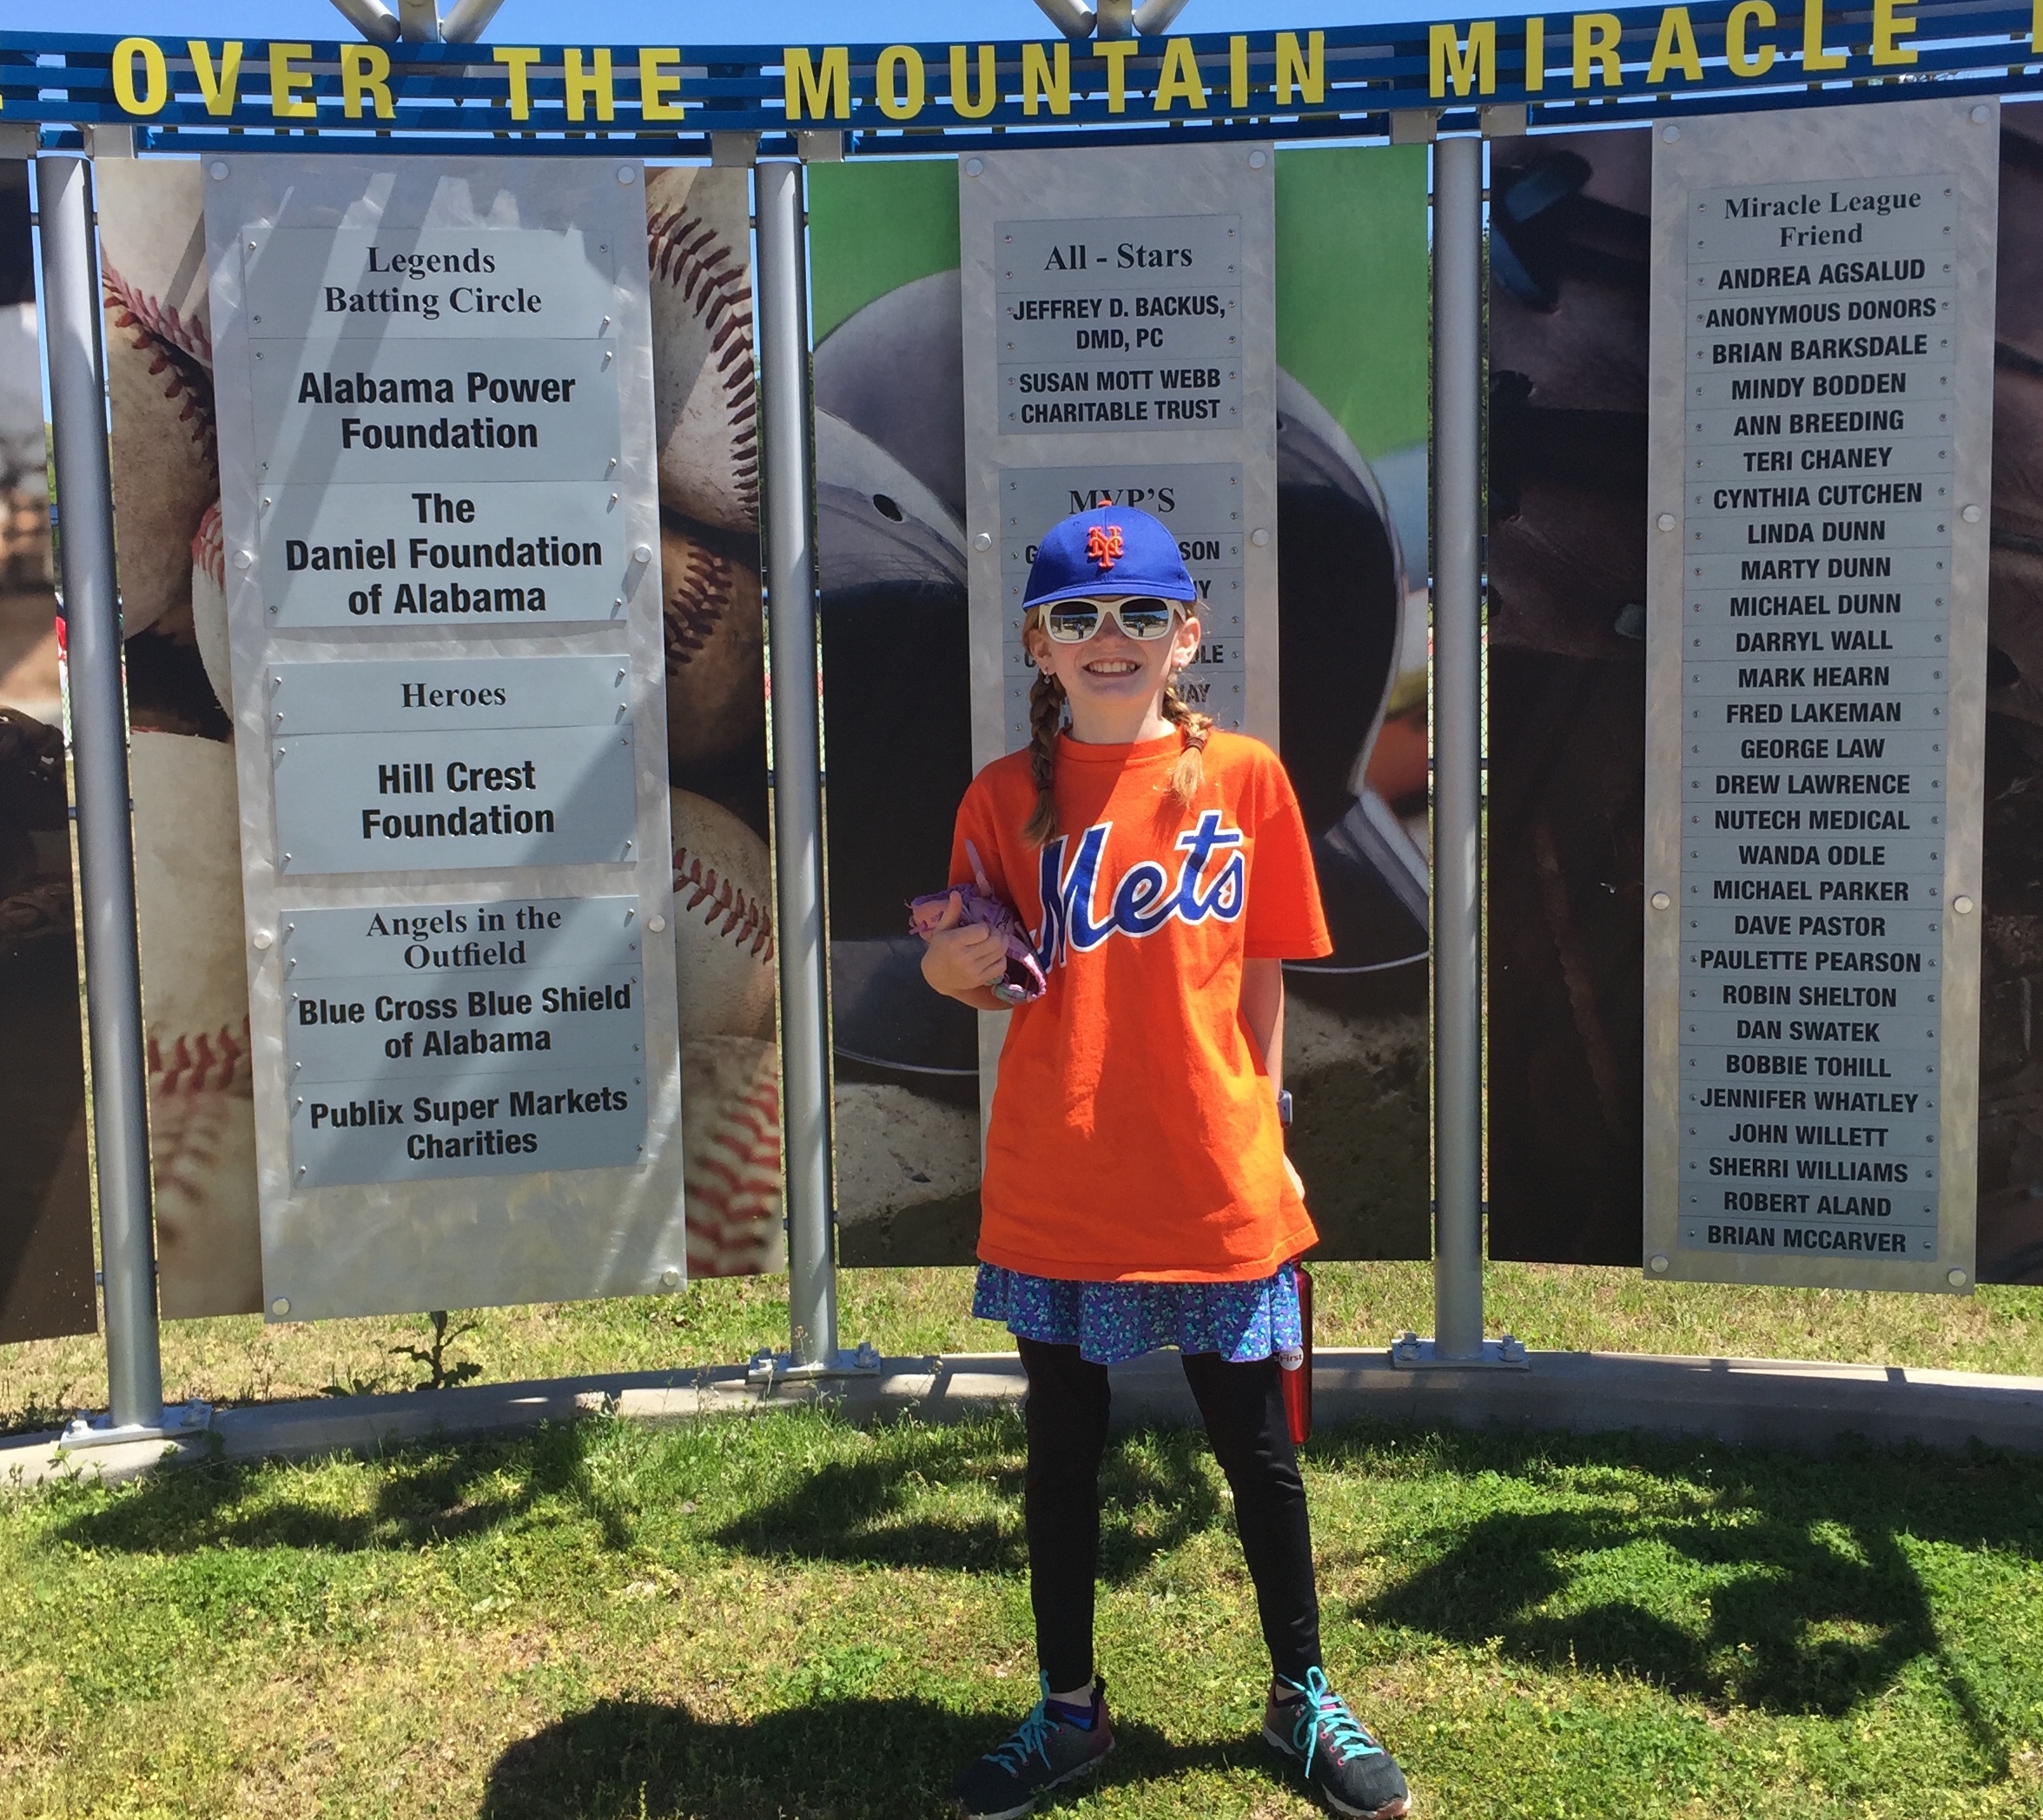 559f8ec563a Miracle League Makes Baseball Accessible to All Players. Henry Jacobs ...